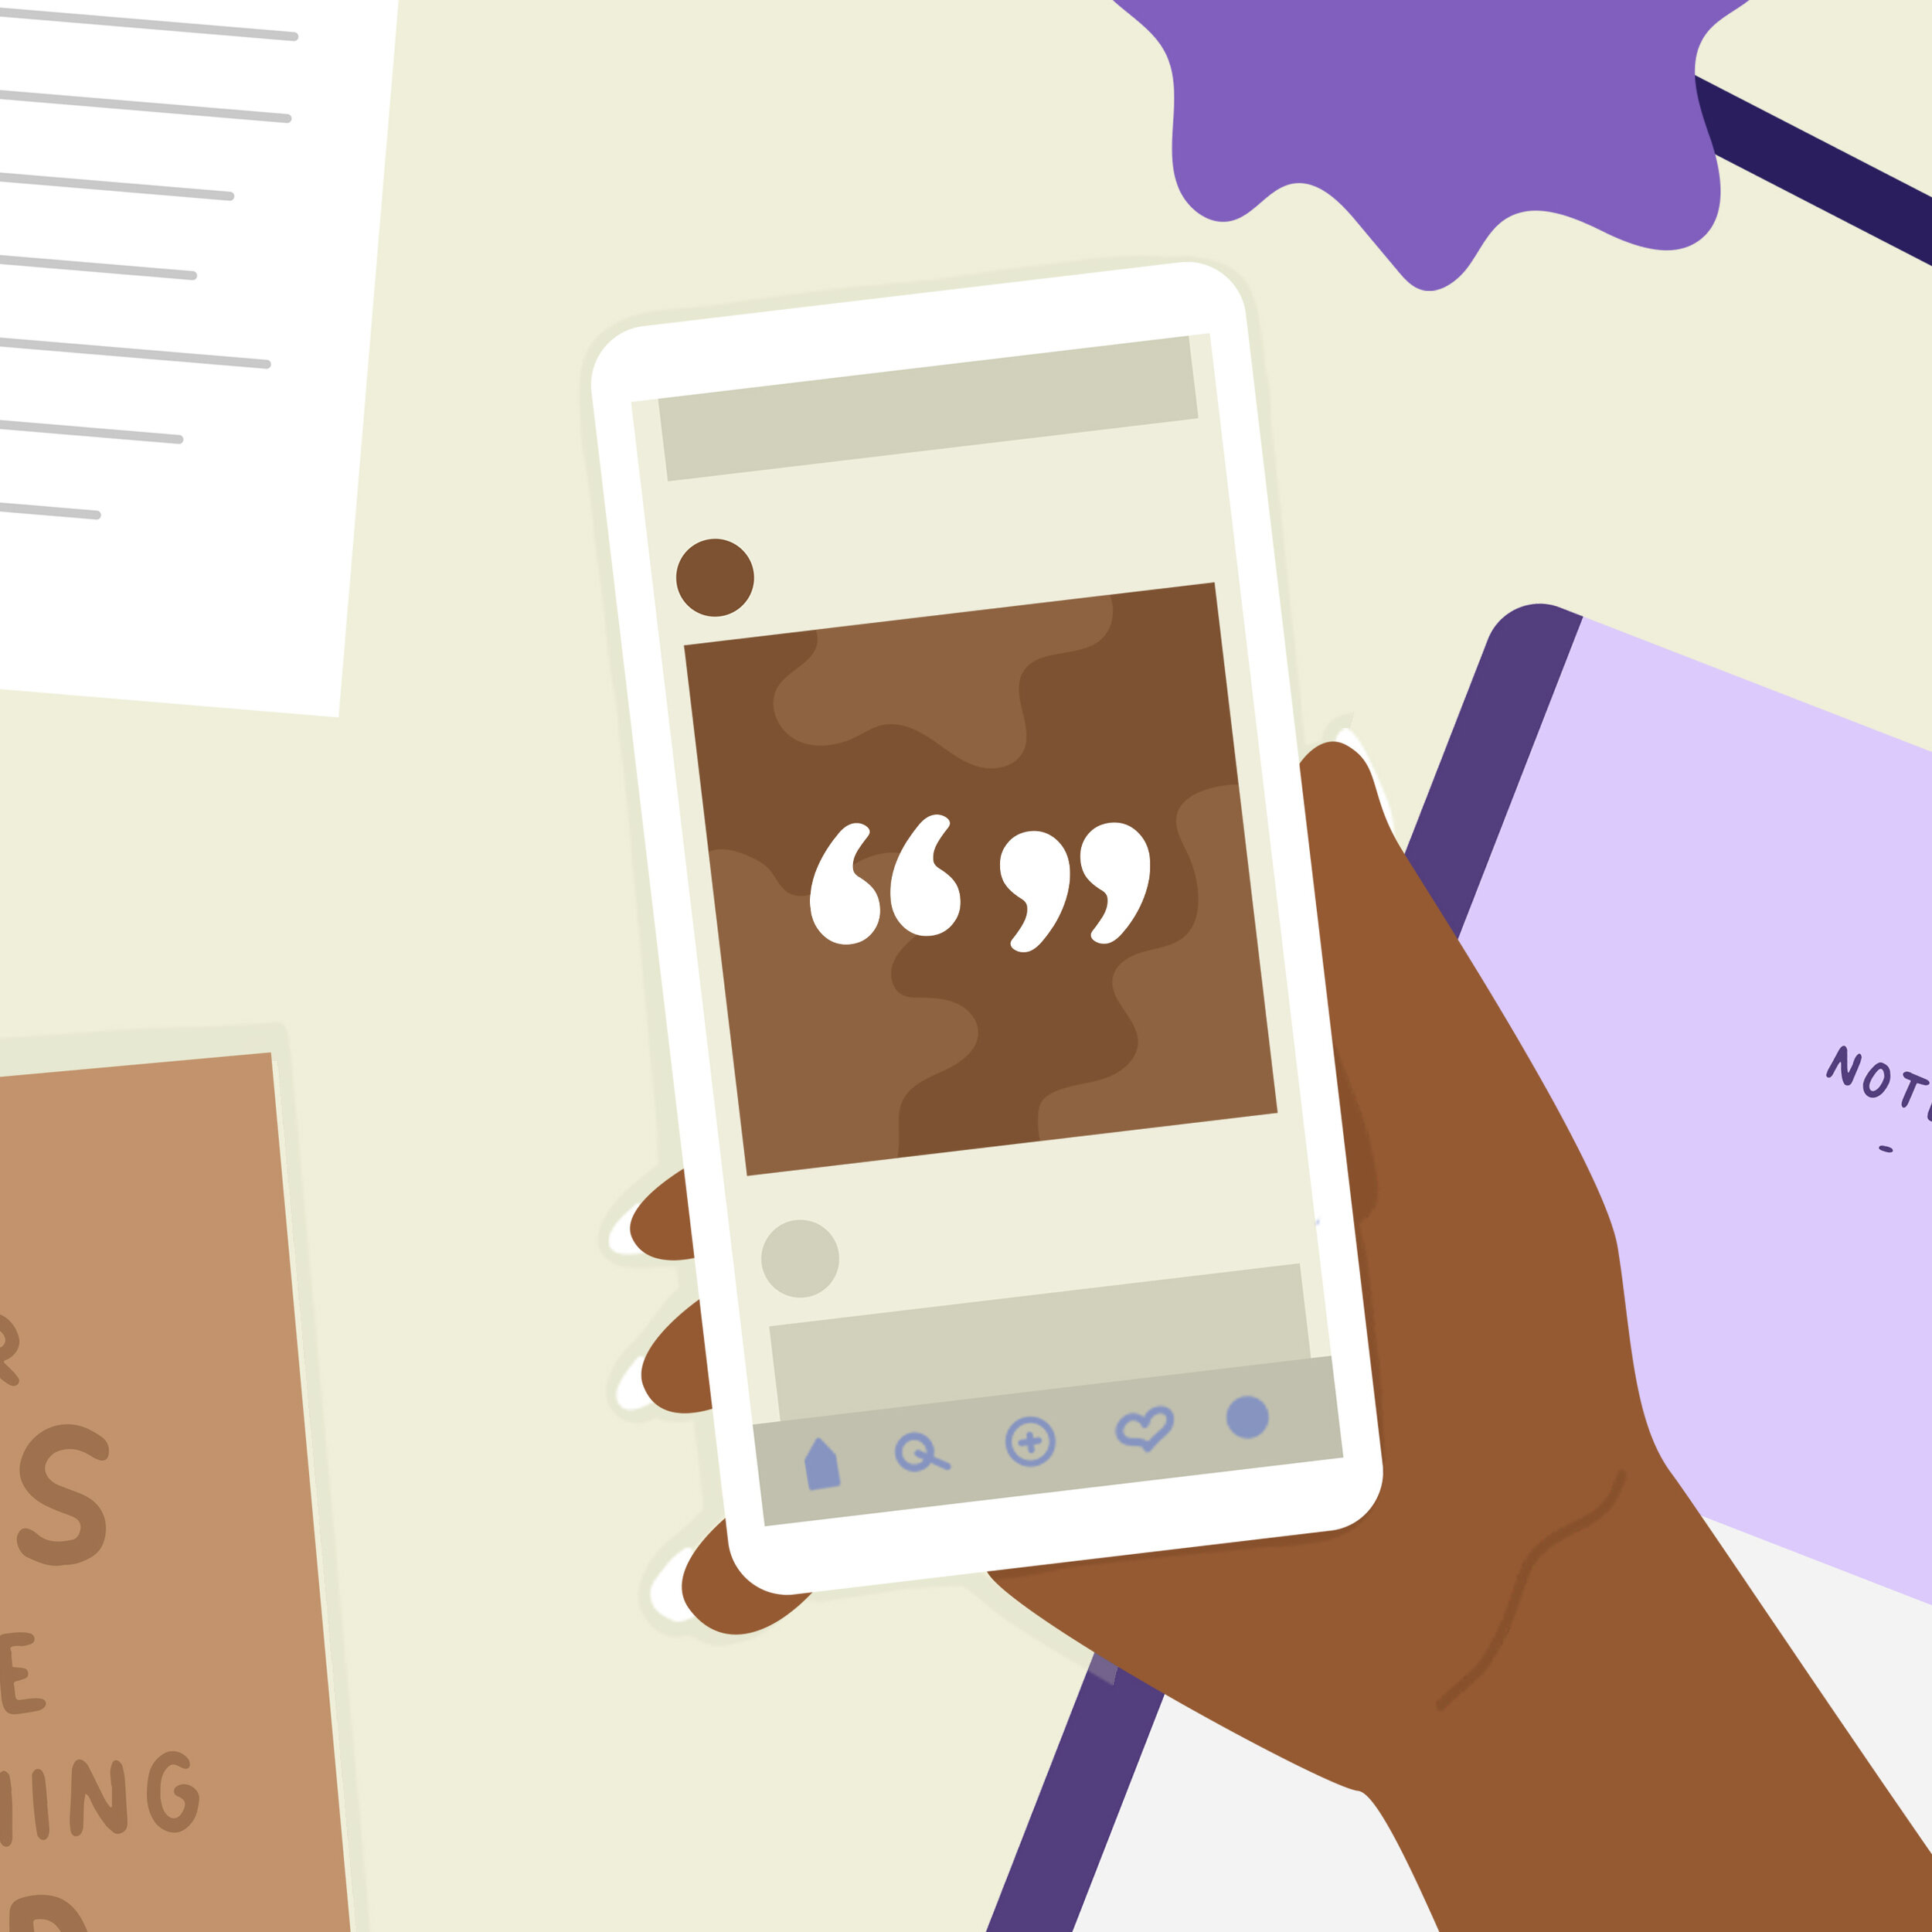 A Black character holds a phone with quotes on a Brown background over a desk.